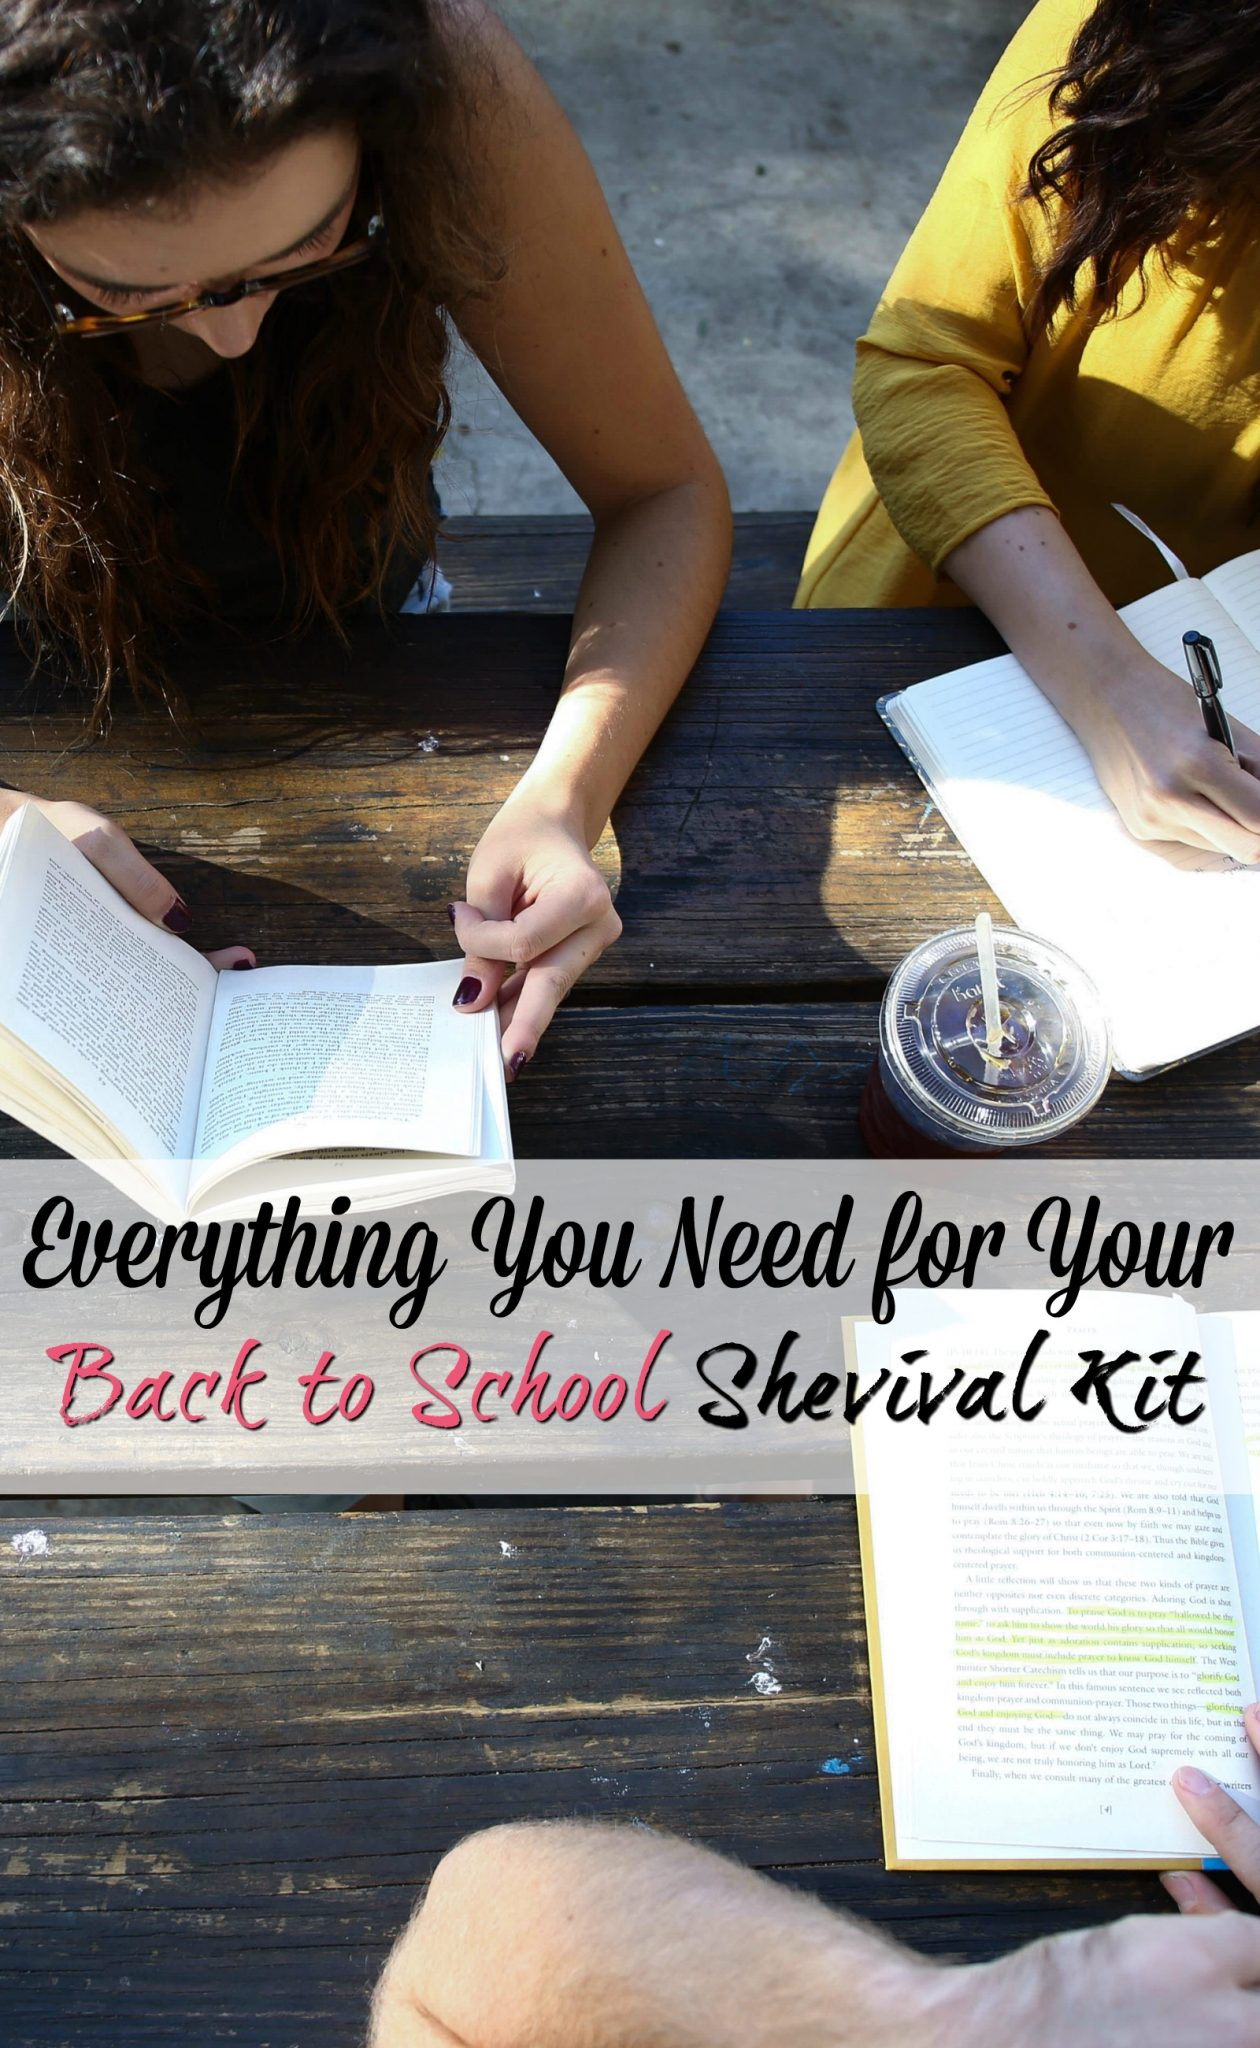 Going back to school can be stressful. Luckily, we've got everything you need for your back to school